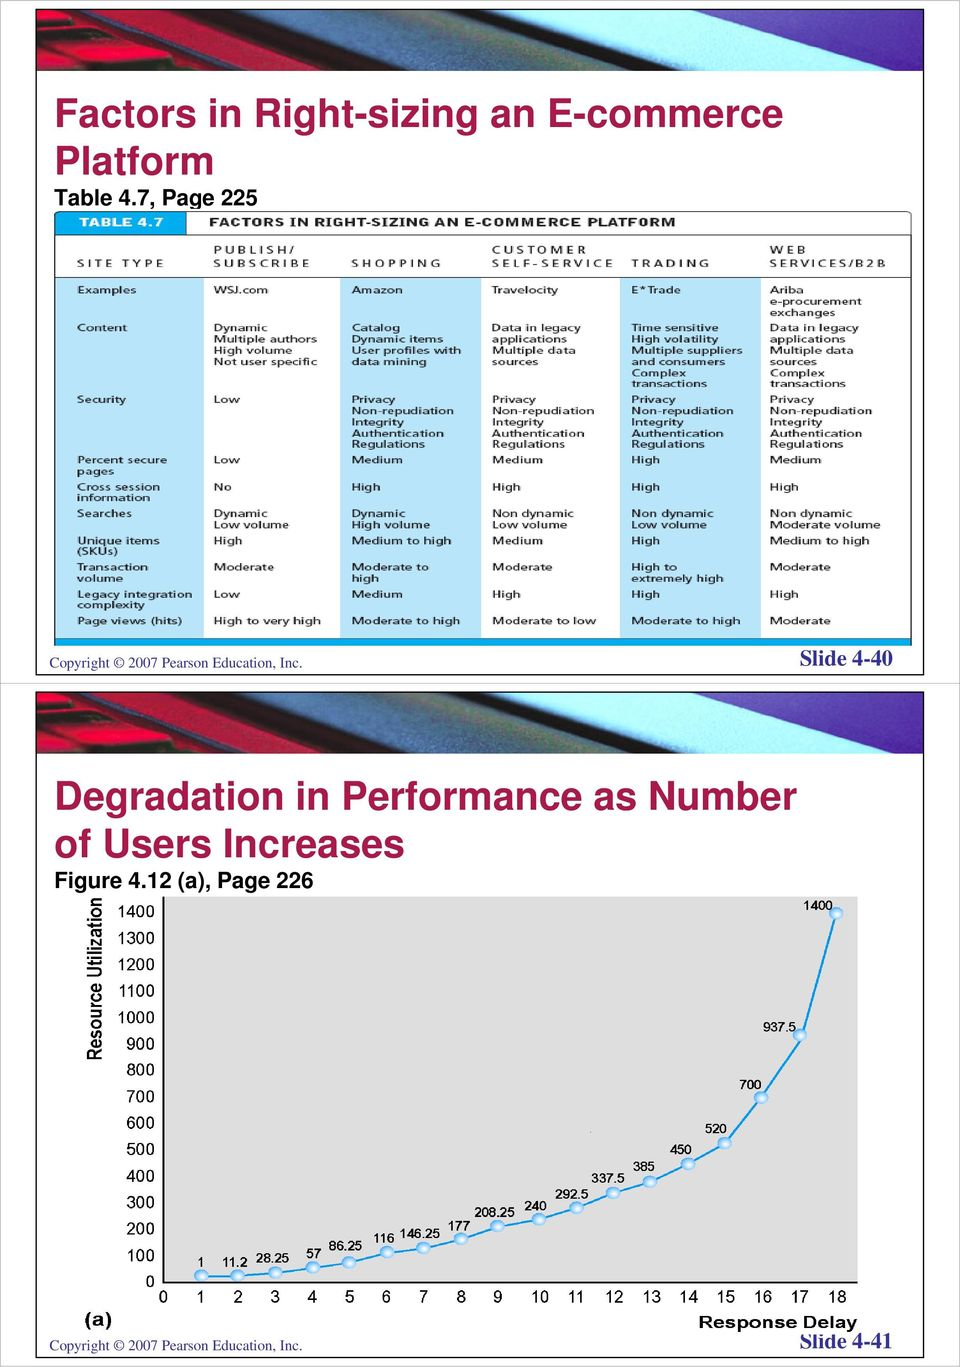 Slide 4-40 Degradation in Performance as Number of Users